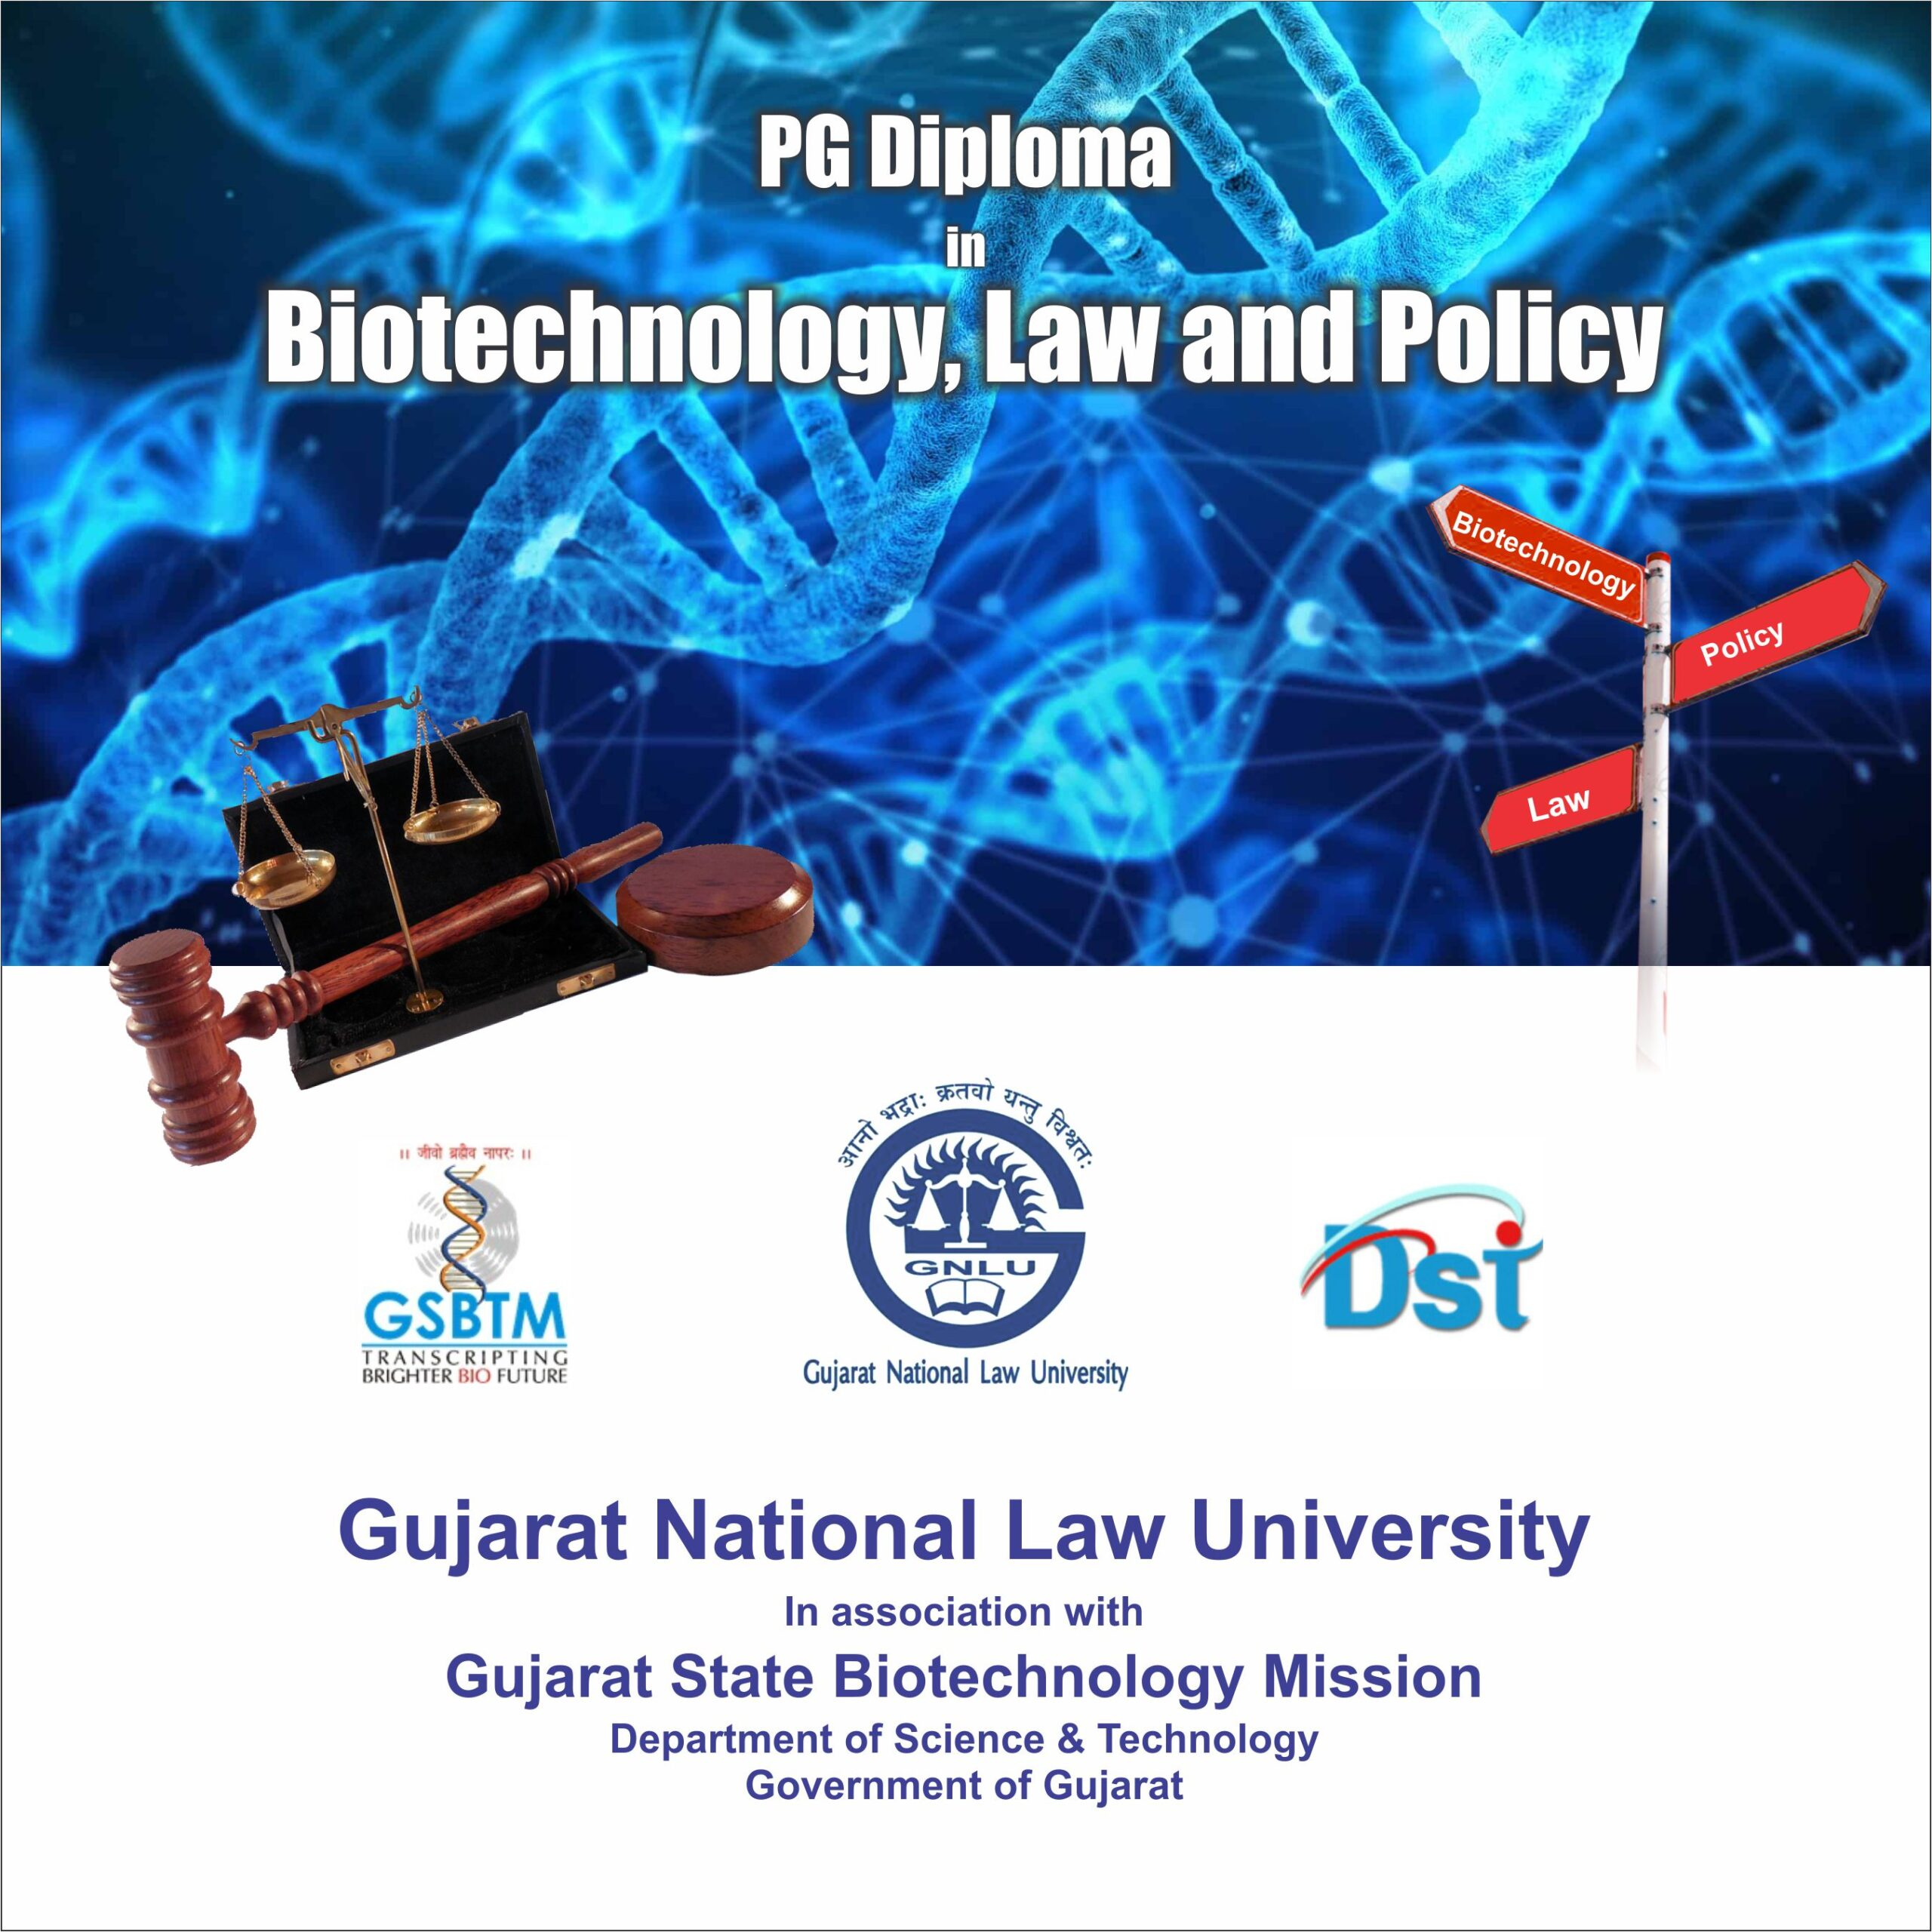 PG Diploma in Biotechnology, Law and Policy By Gujarat National Law University (Register by 31 December 2020)